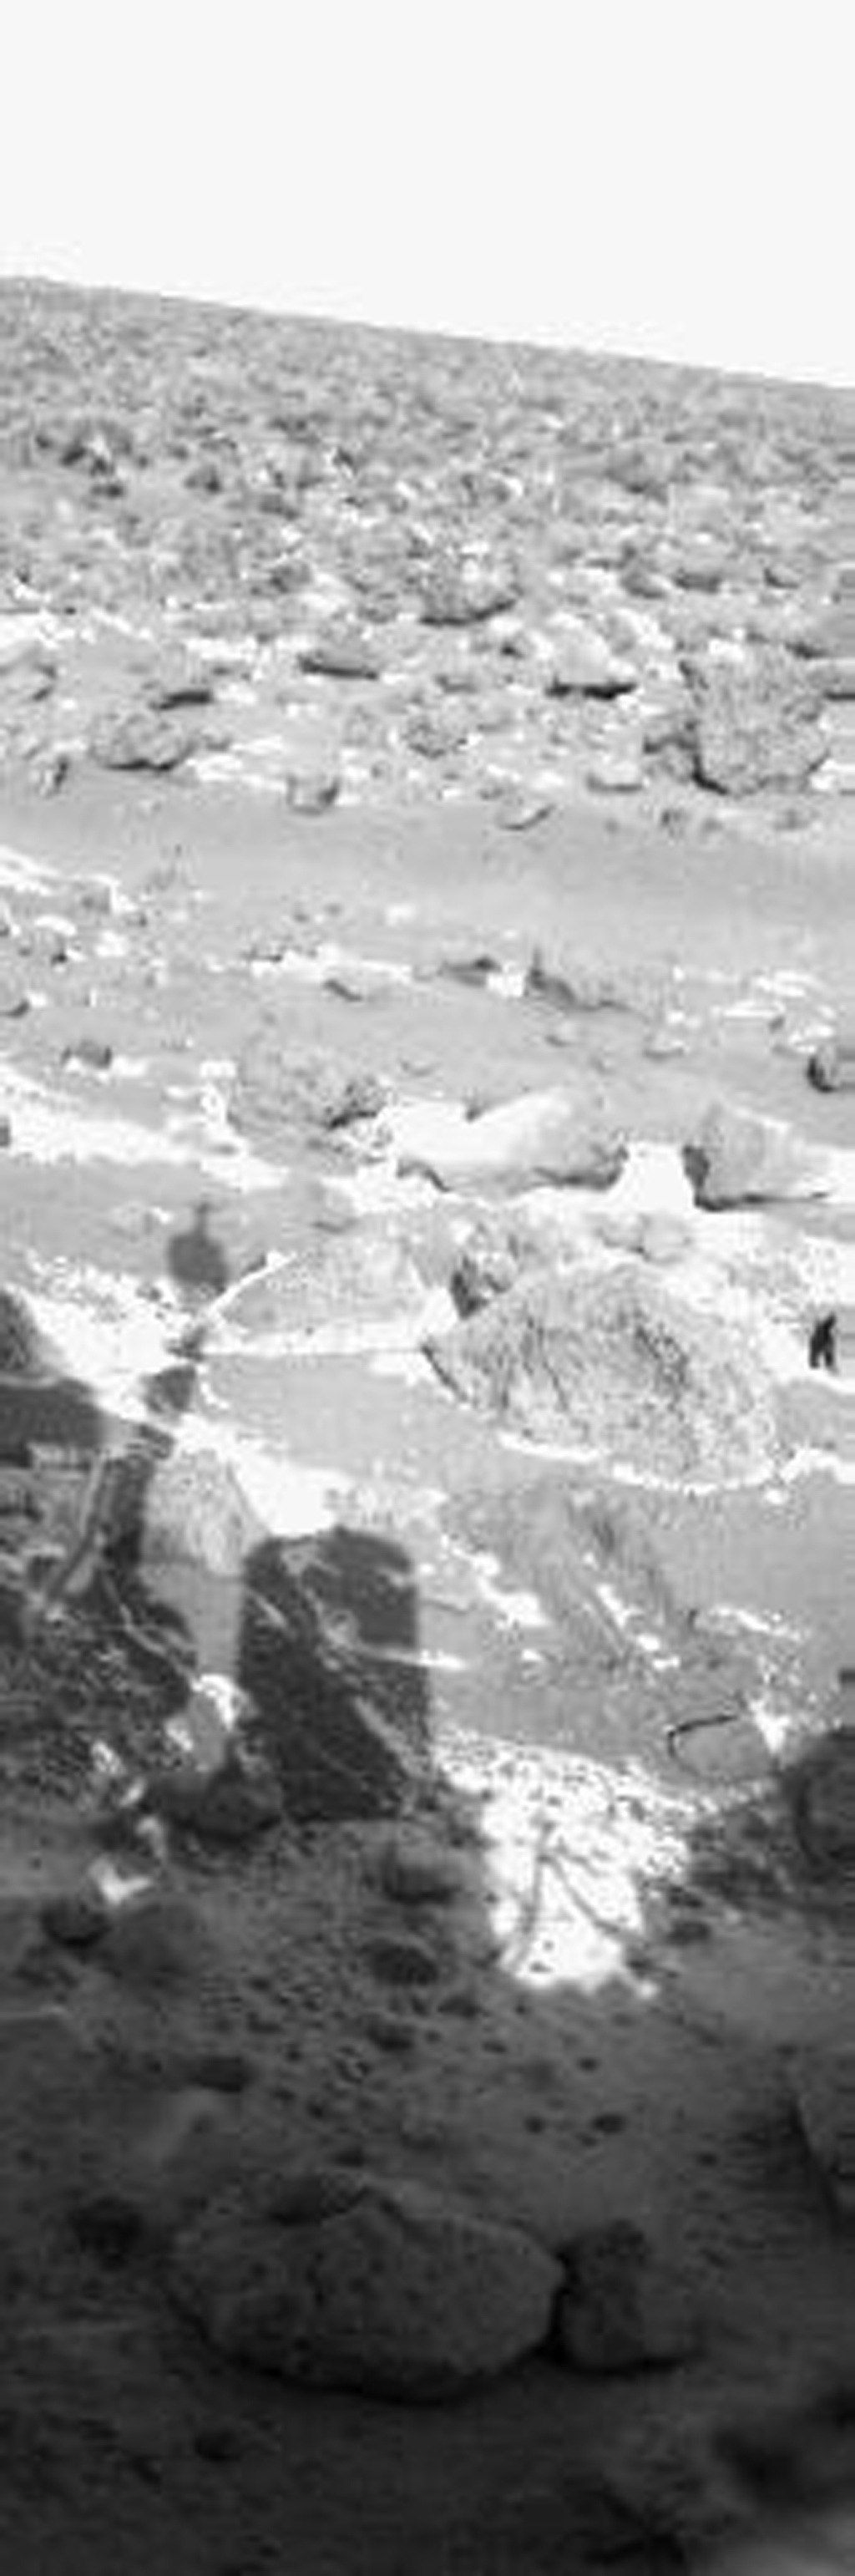 NASA's Viking Lander 2 picture from Utopia Planitia shows the first clear indication of frost accumulation on the Martian surface seen by lander cameras. The season is late winter, Sept. 13, 1977.